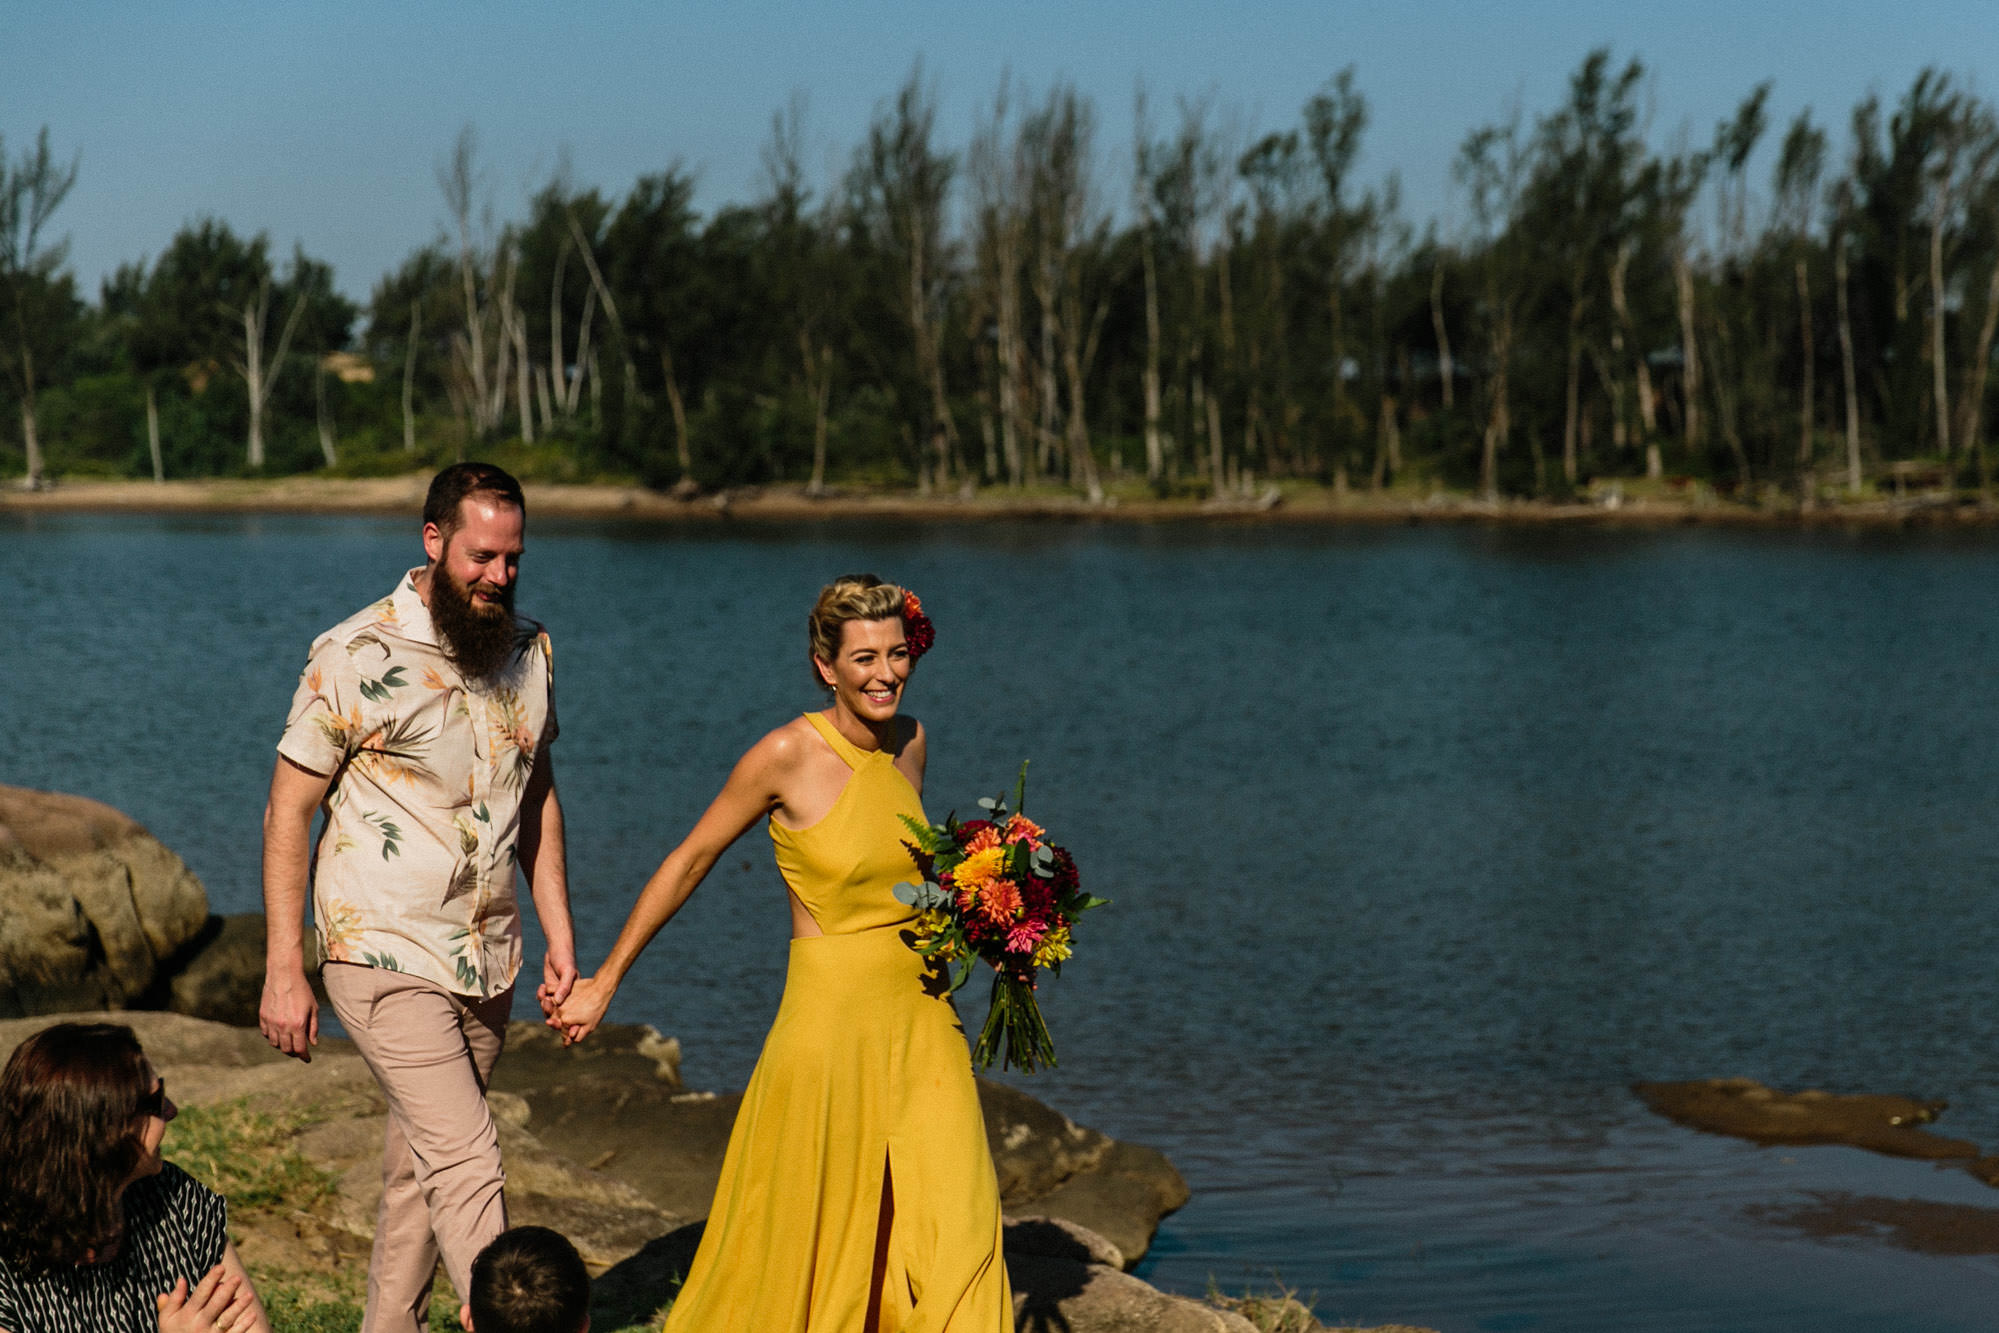 ac7a389bfaee81 Yellow Wedding Dress With Bridesmaids In Tropical Print For A Relaxed  Wedding At The Hatchery South ...